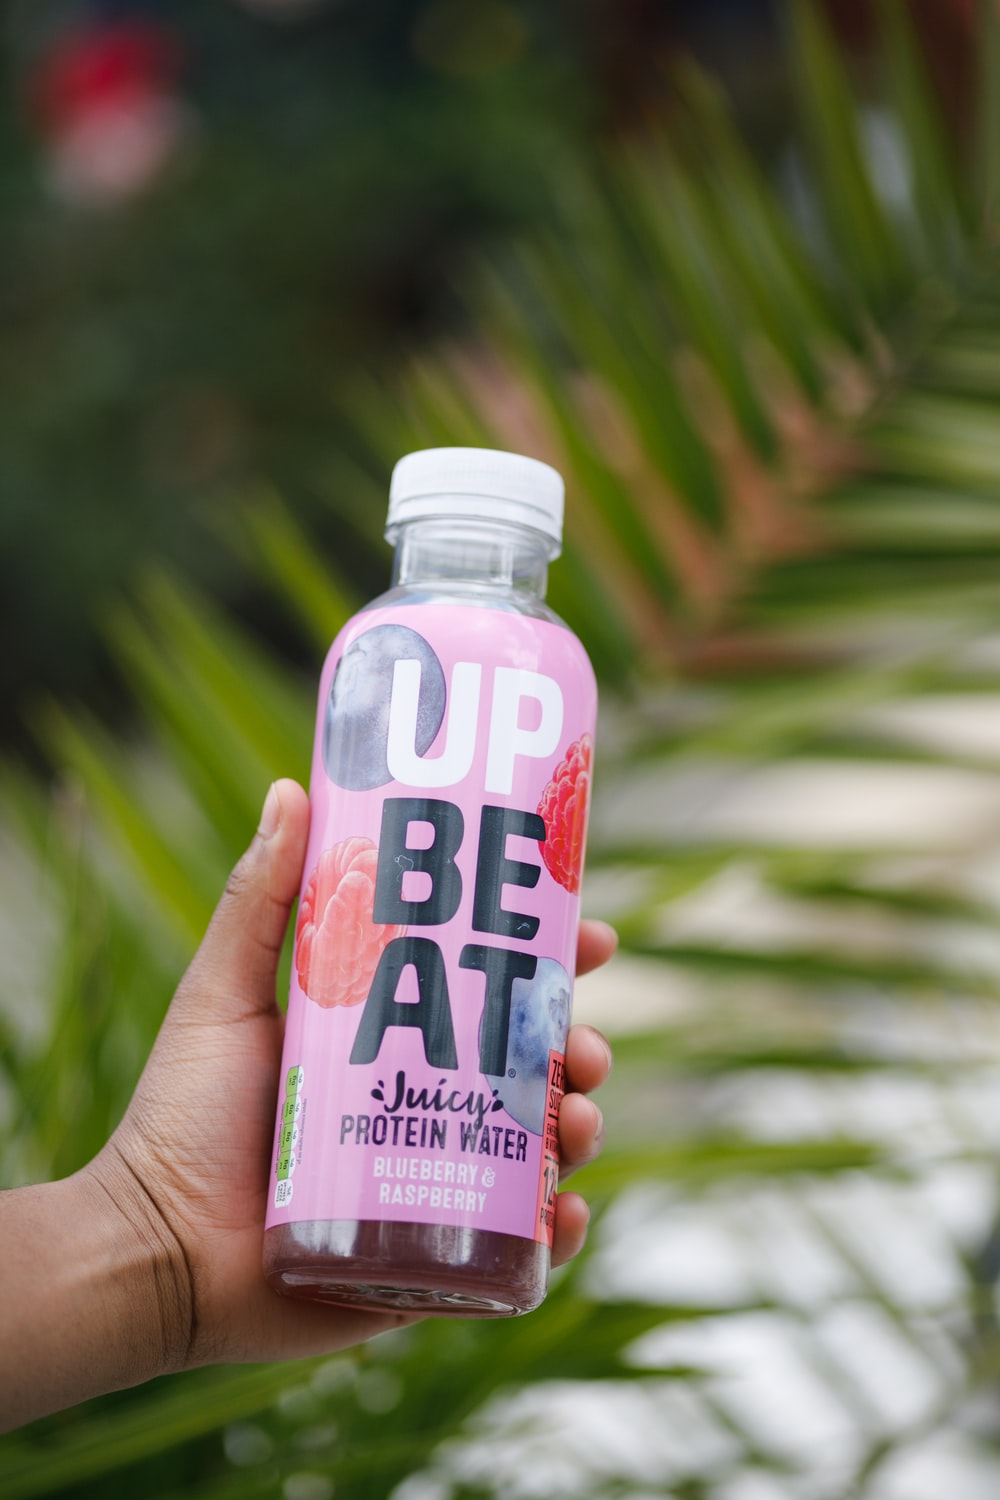 Up Beat protein water bottle